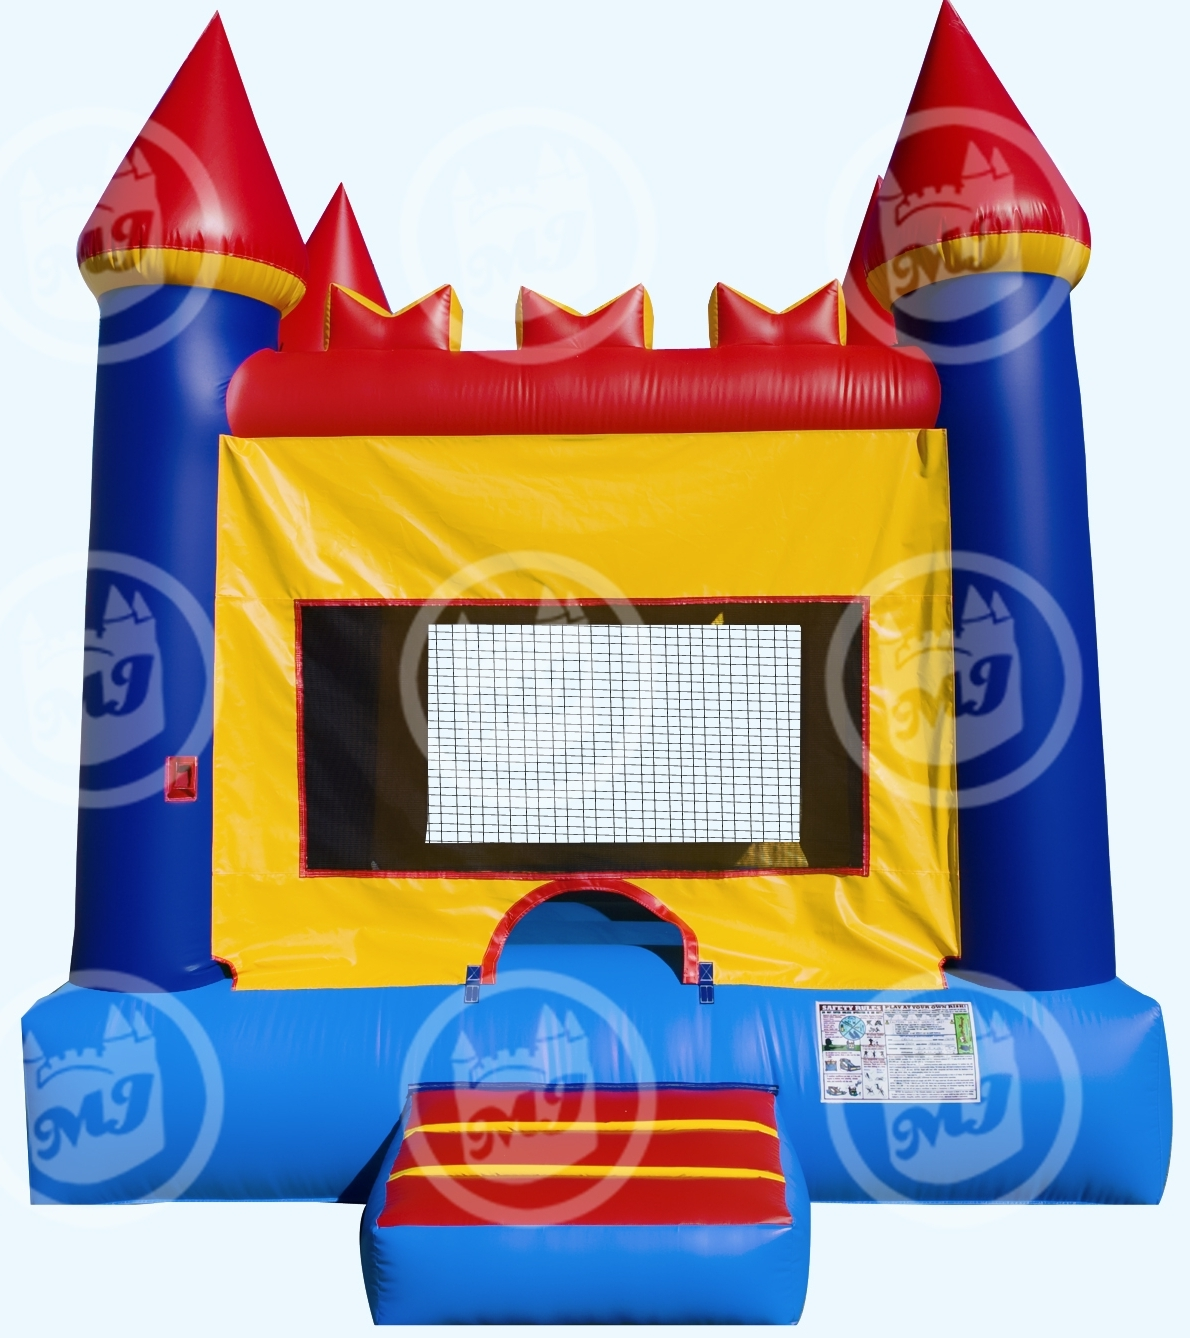 Pearl River Bounce Houses